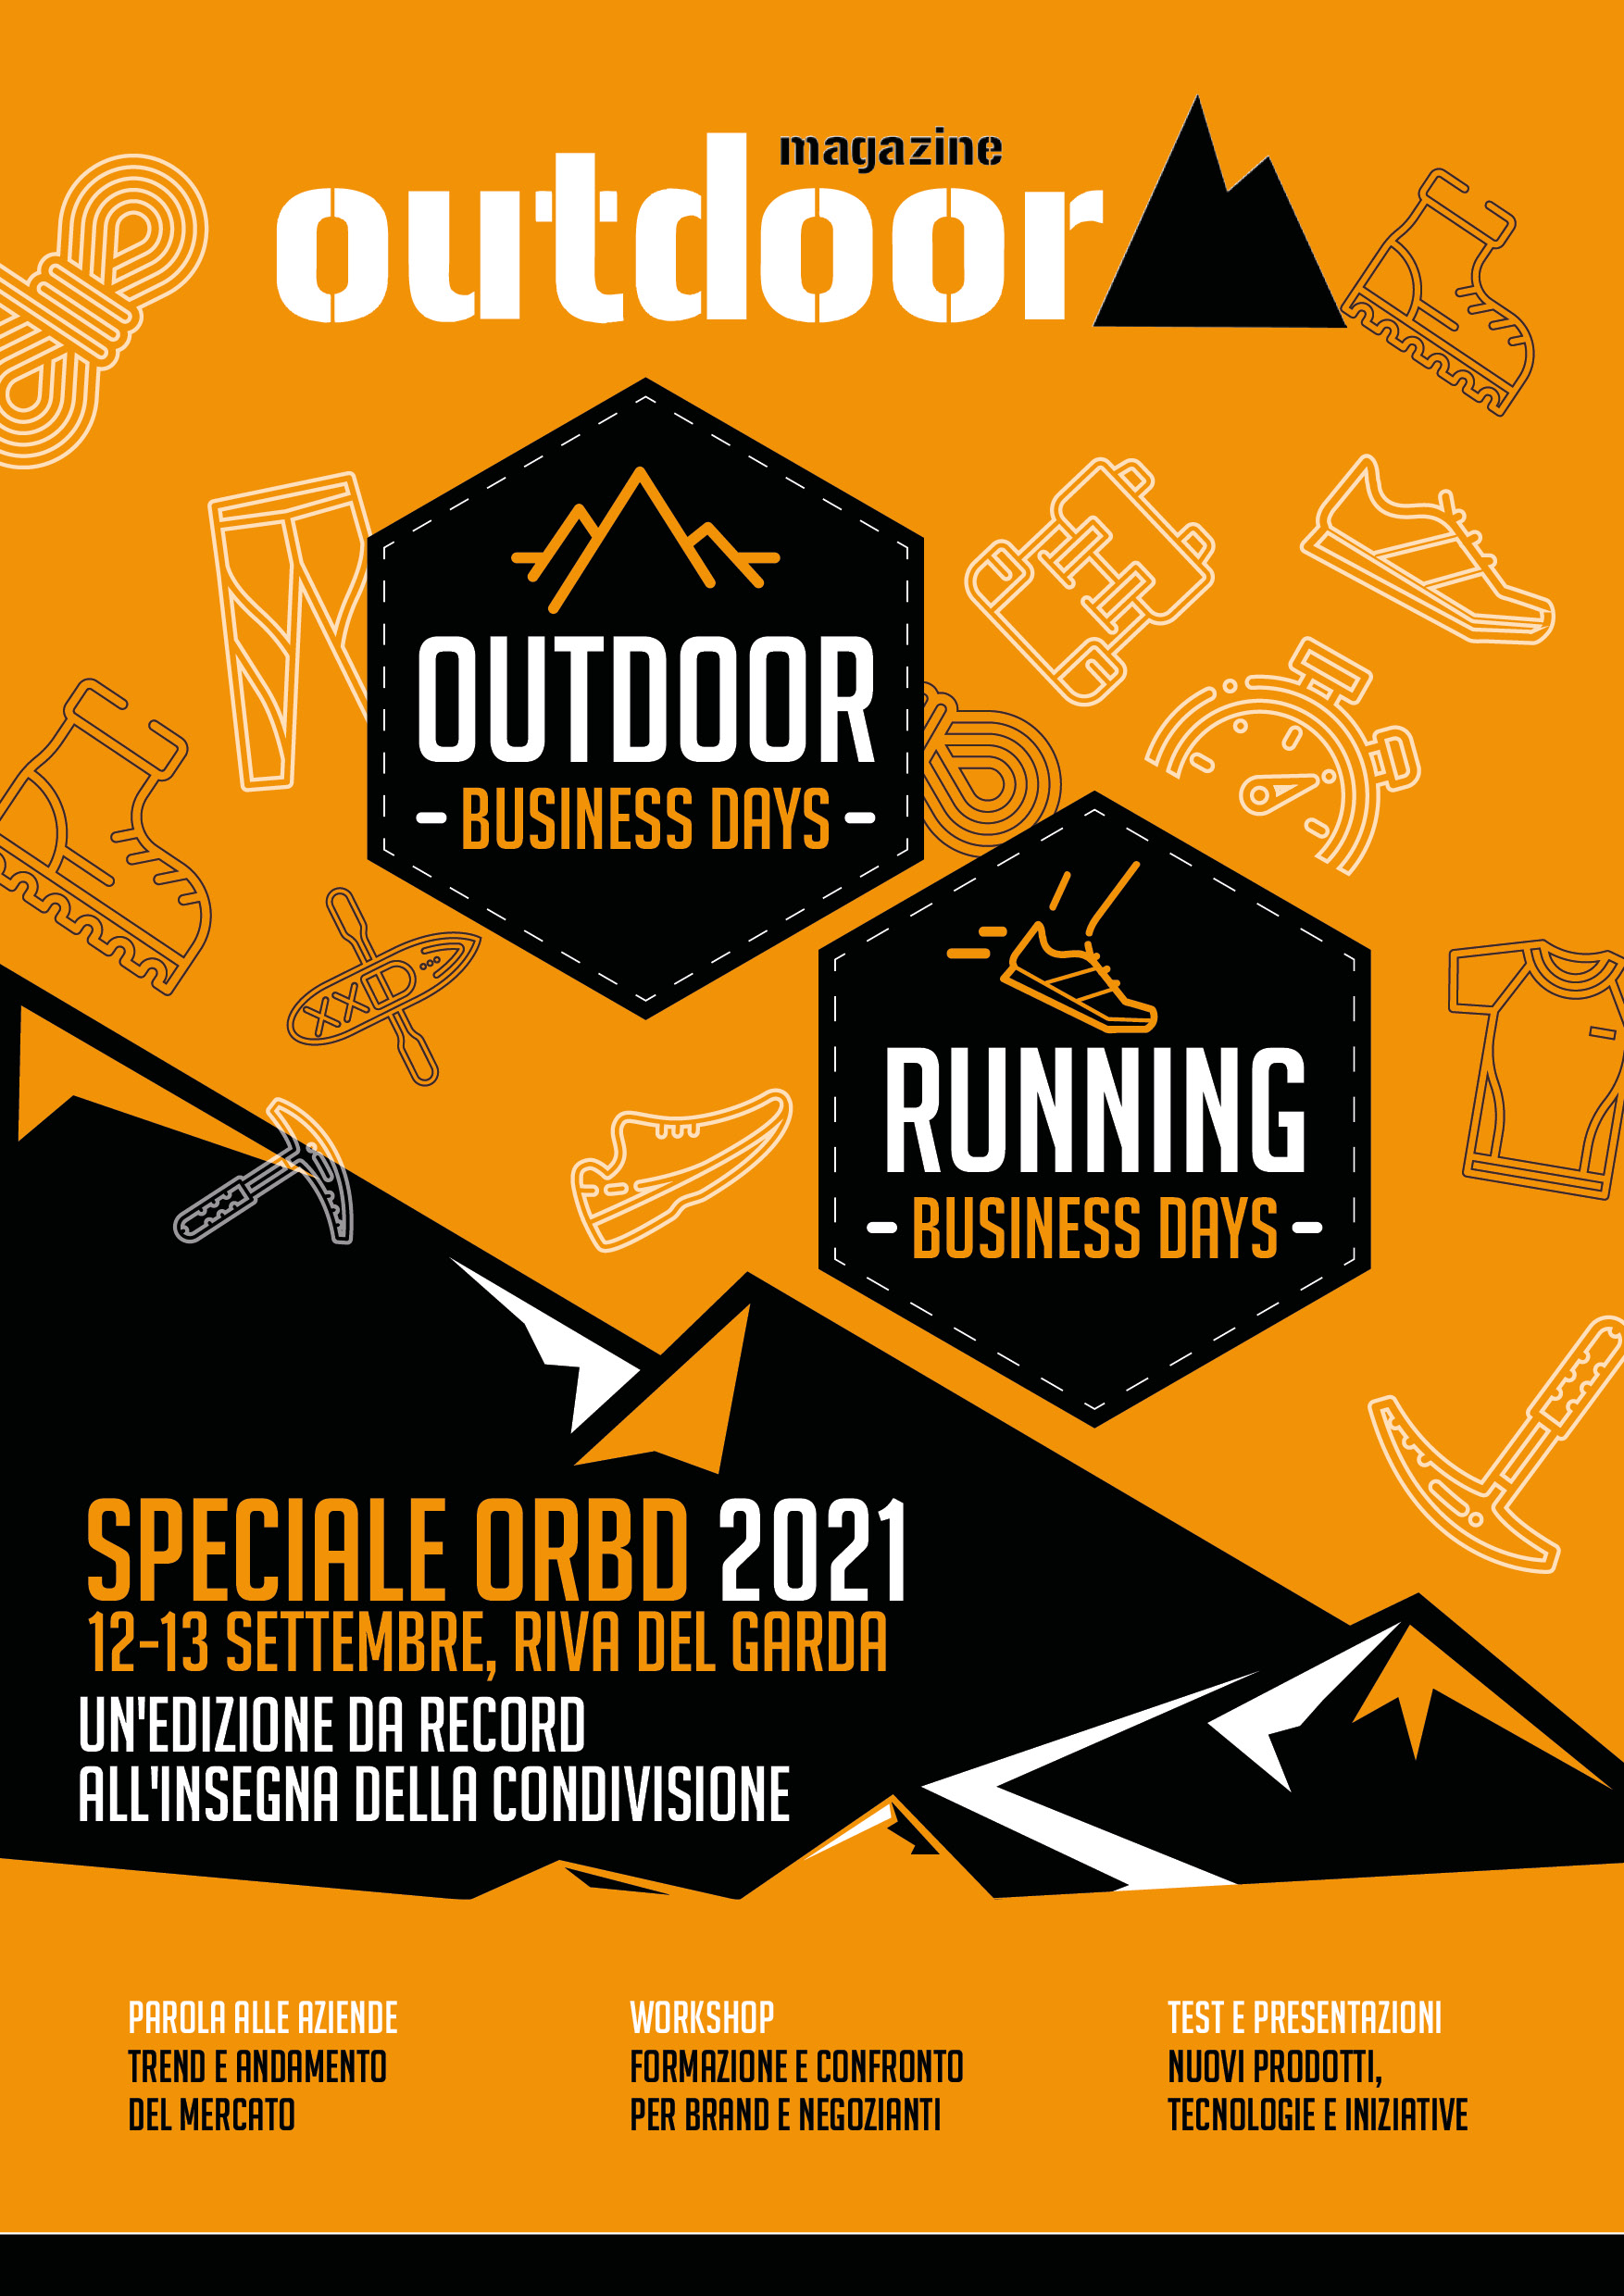 Outdoor Magazine #10/2021 – Speciale ORBD 2021